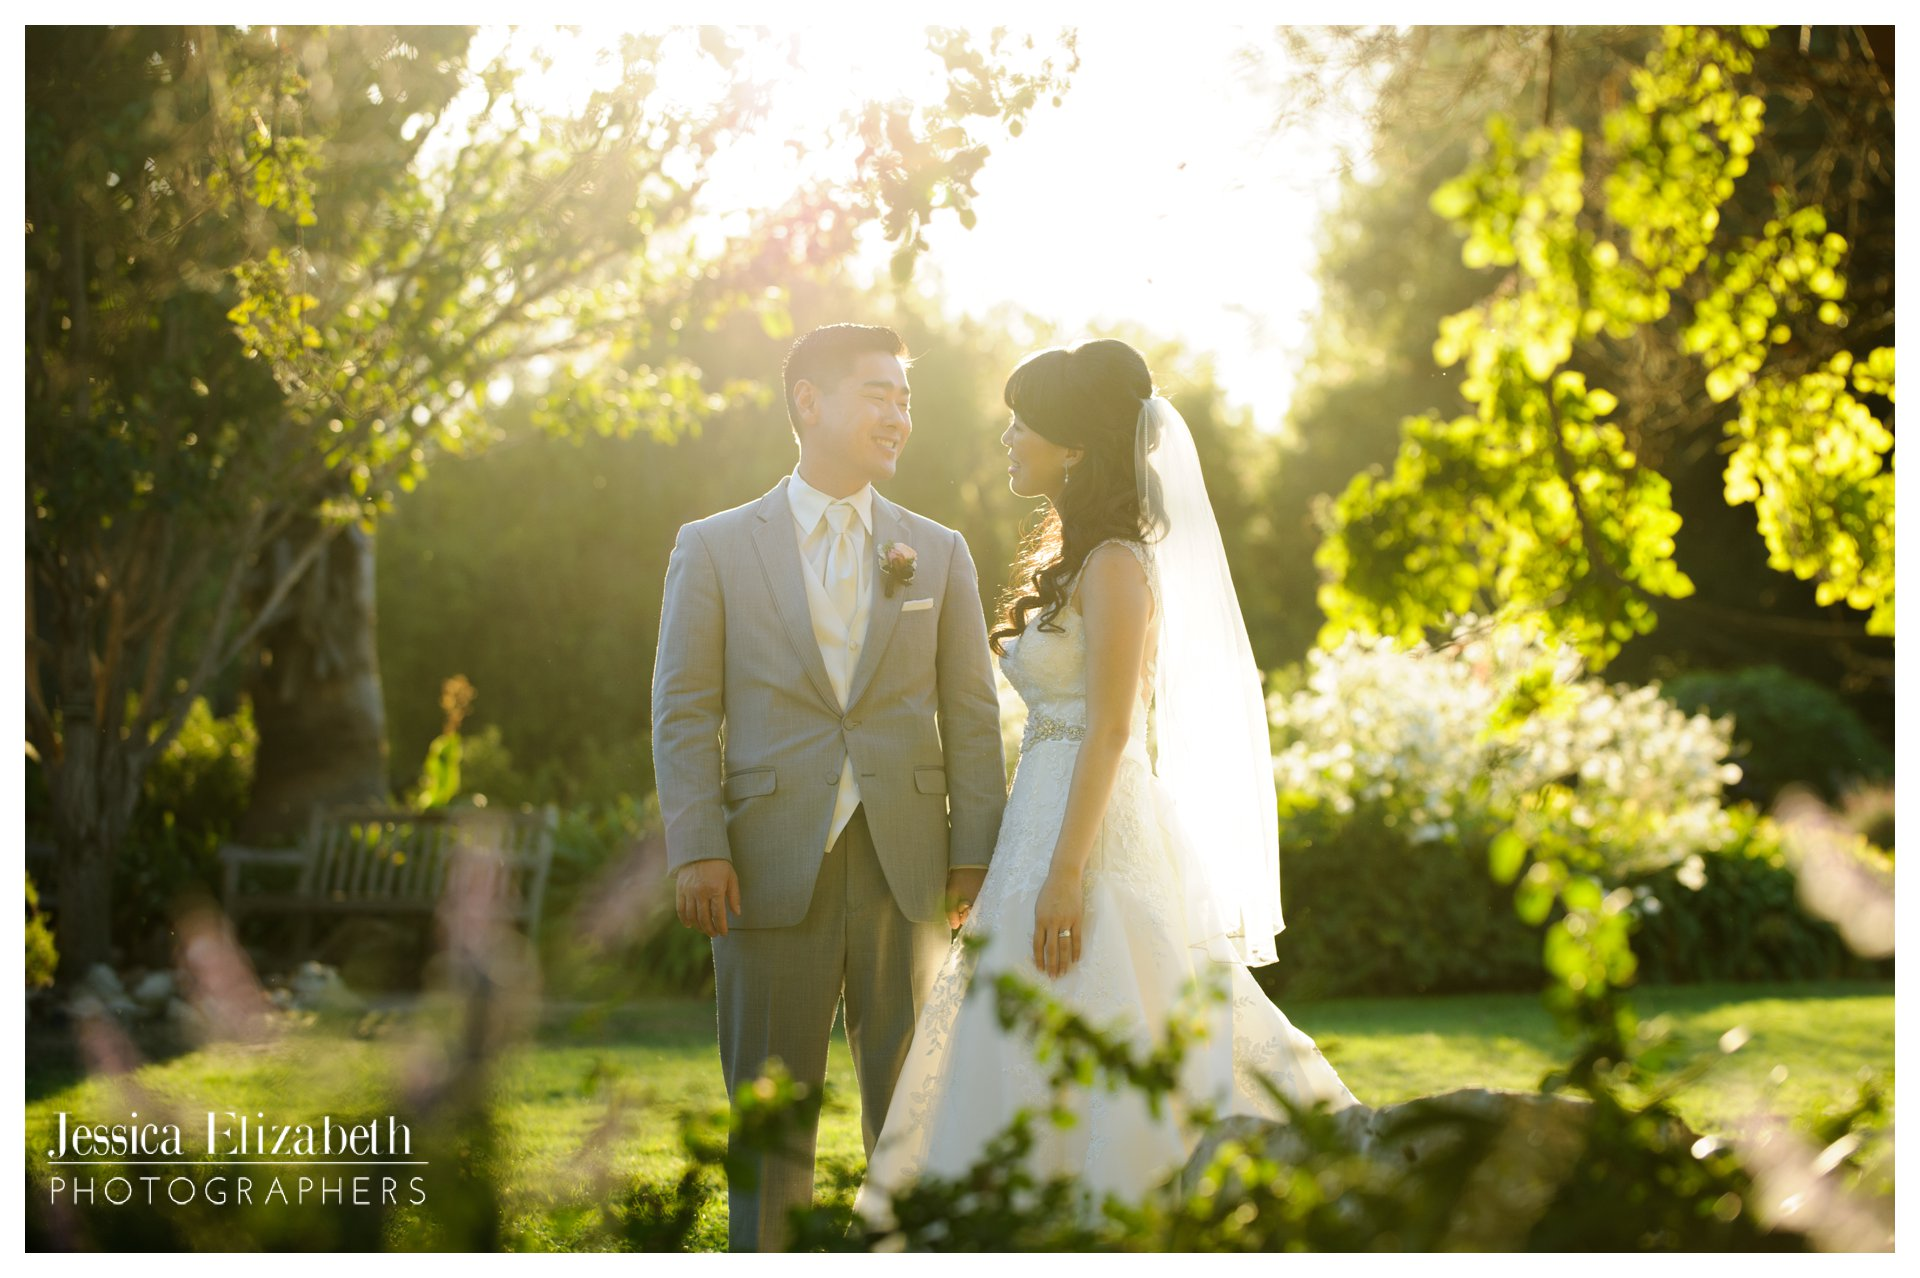 29-South-Coast-Botanic-Garden-Palos-Verdes-Wedding-Photography-by-Jessica-Elizabeth1.jpg